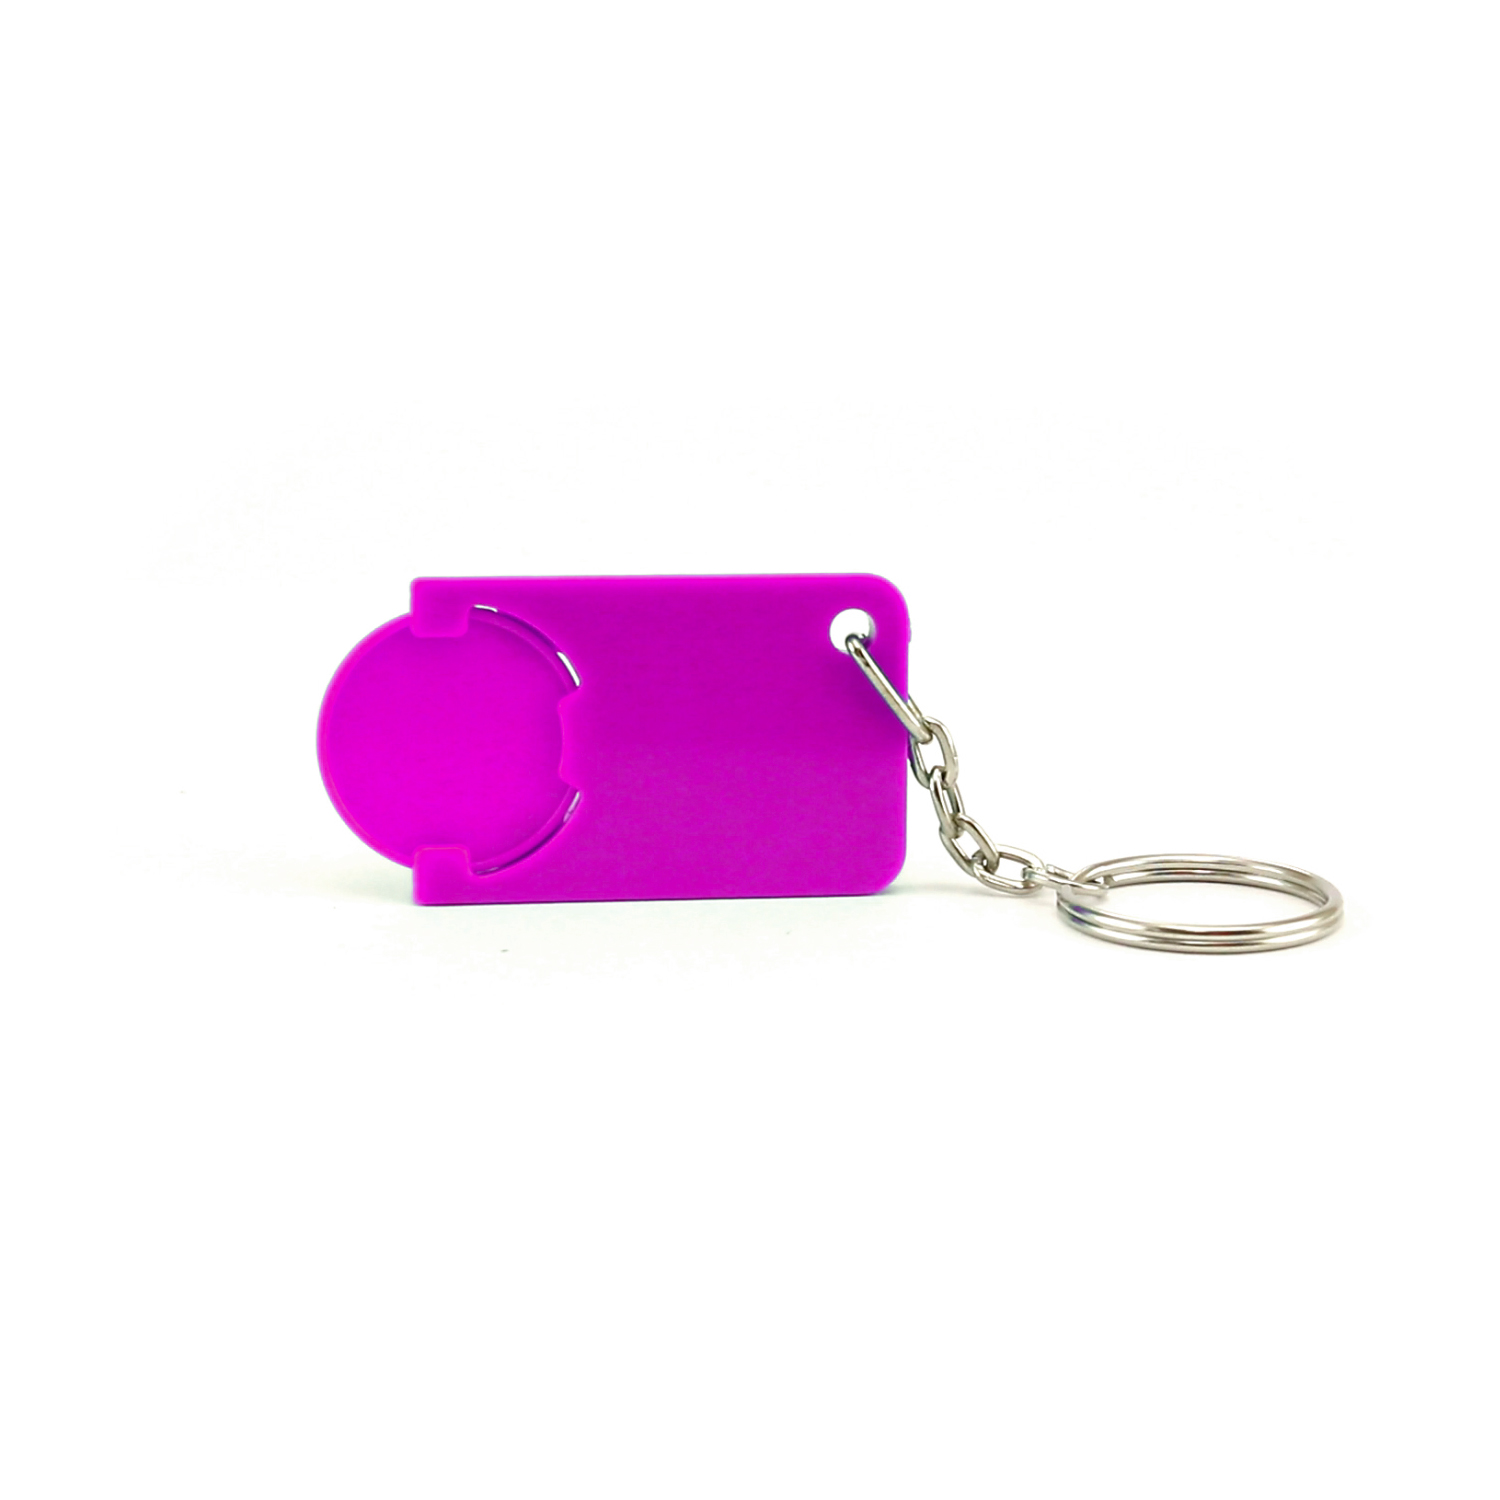 Keychain 039 (Shopping Trolley coin keychain) - hmi47039-13 (Purple)